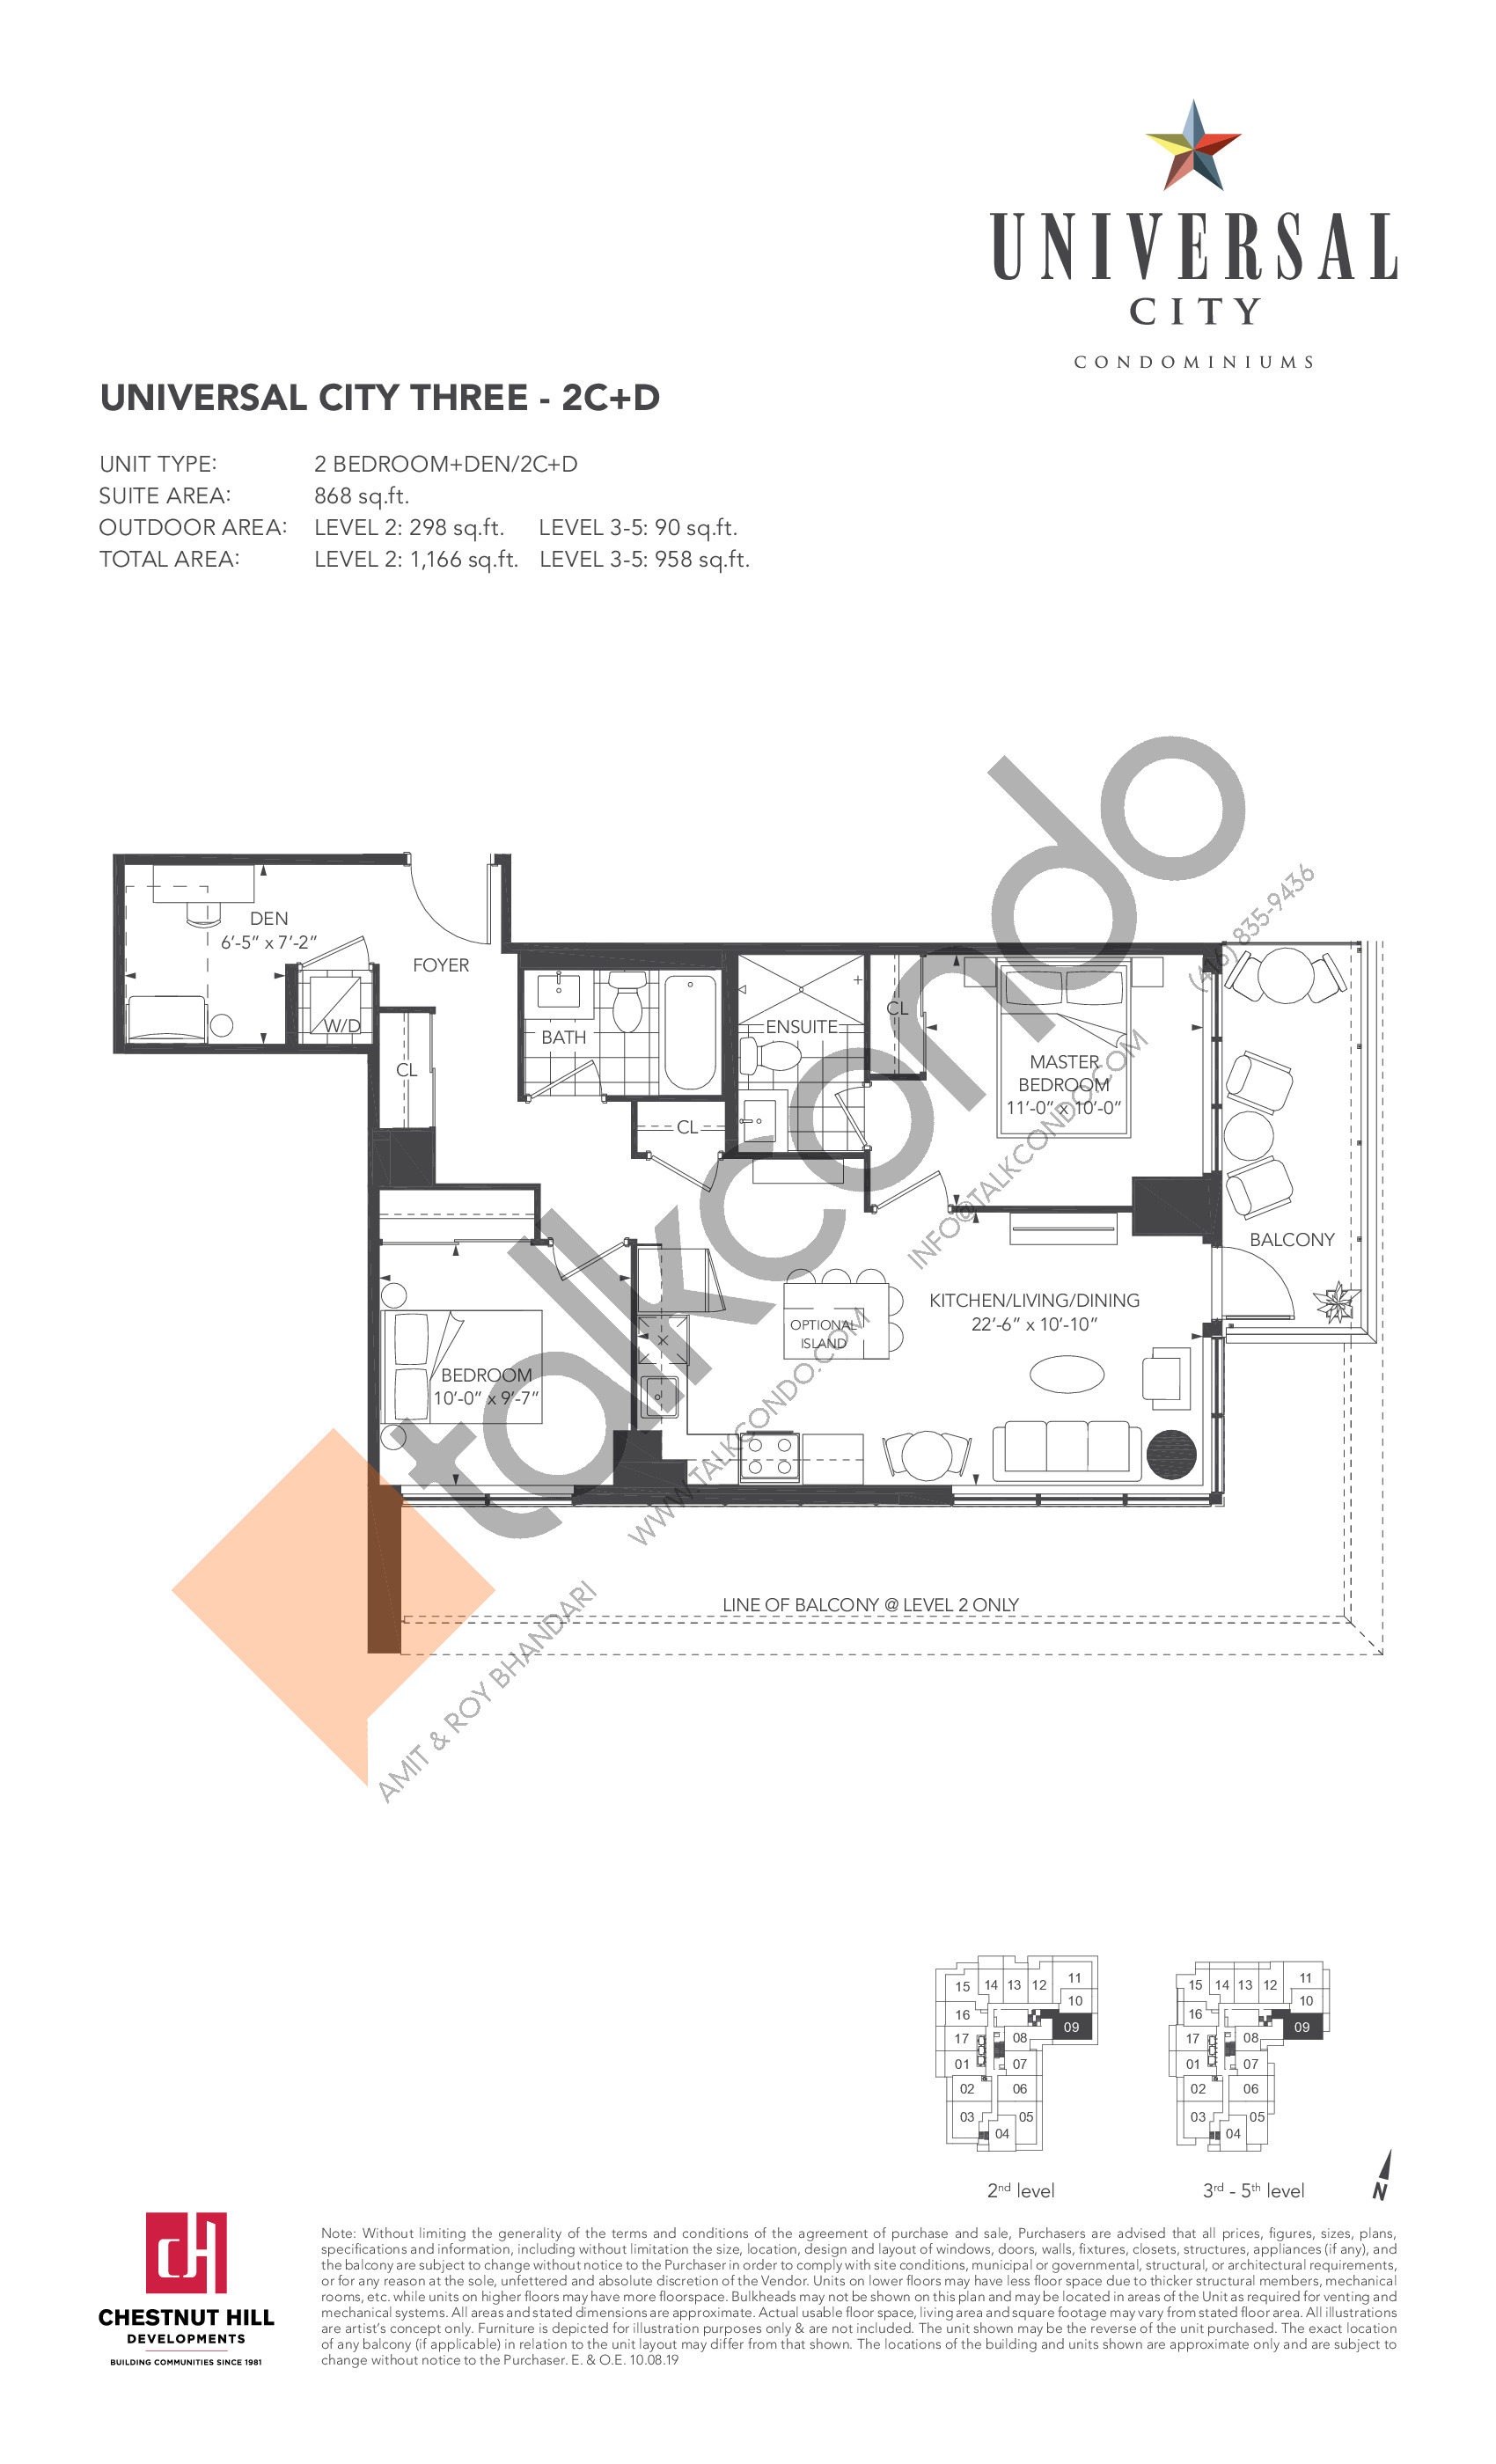 2C+D Floor Plan at Universal City Condos - Phase 3 - 868 sq.ft